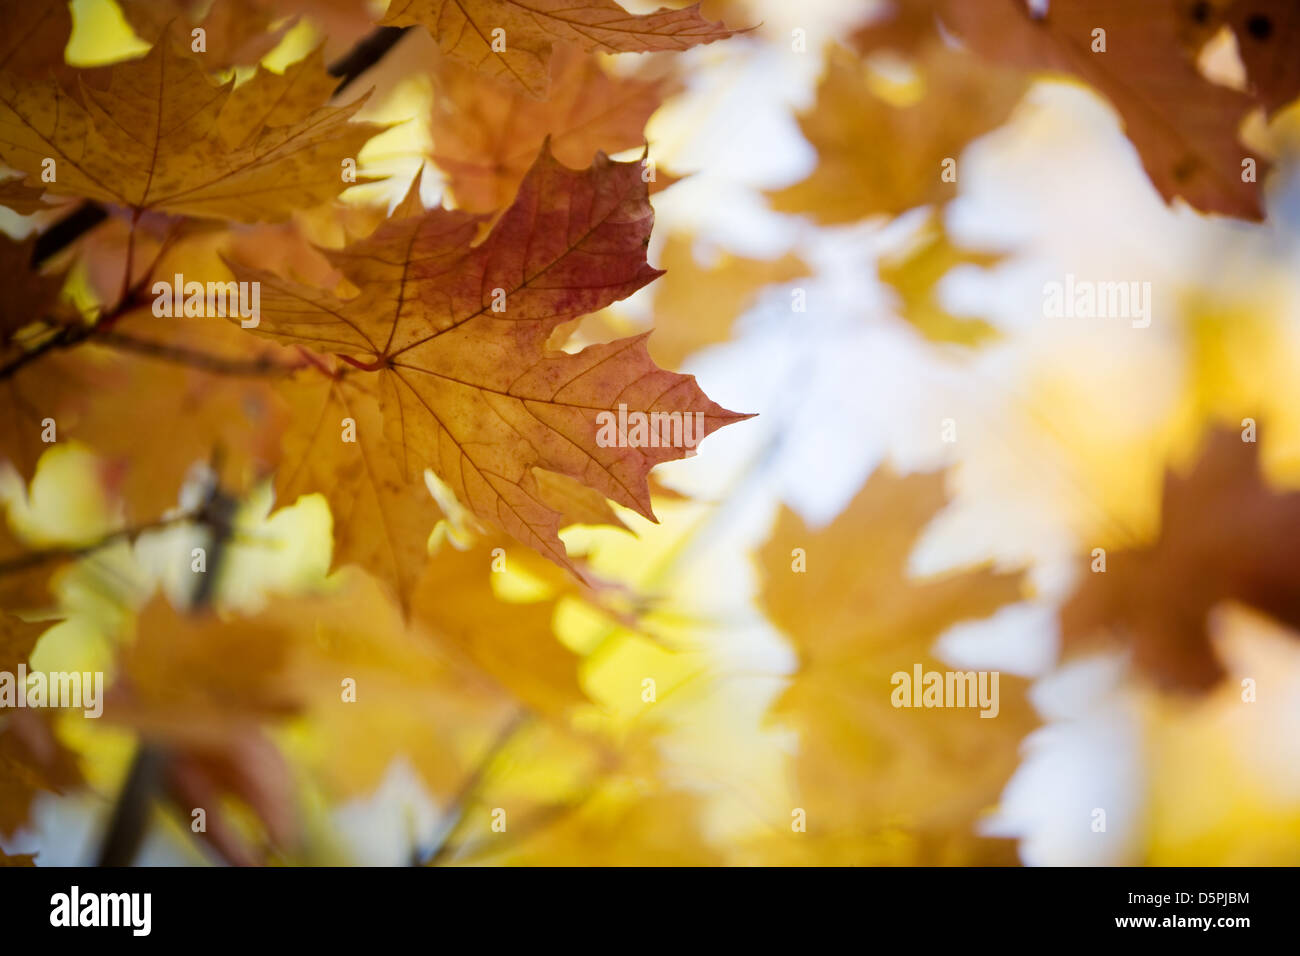 Close-up of maple tree in beautiful autumn colors - Stock Image